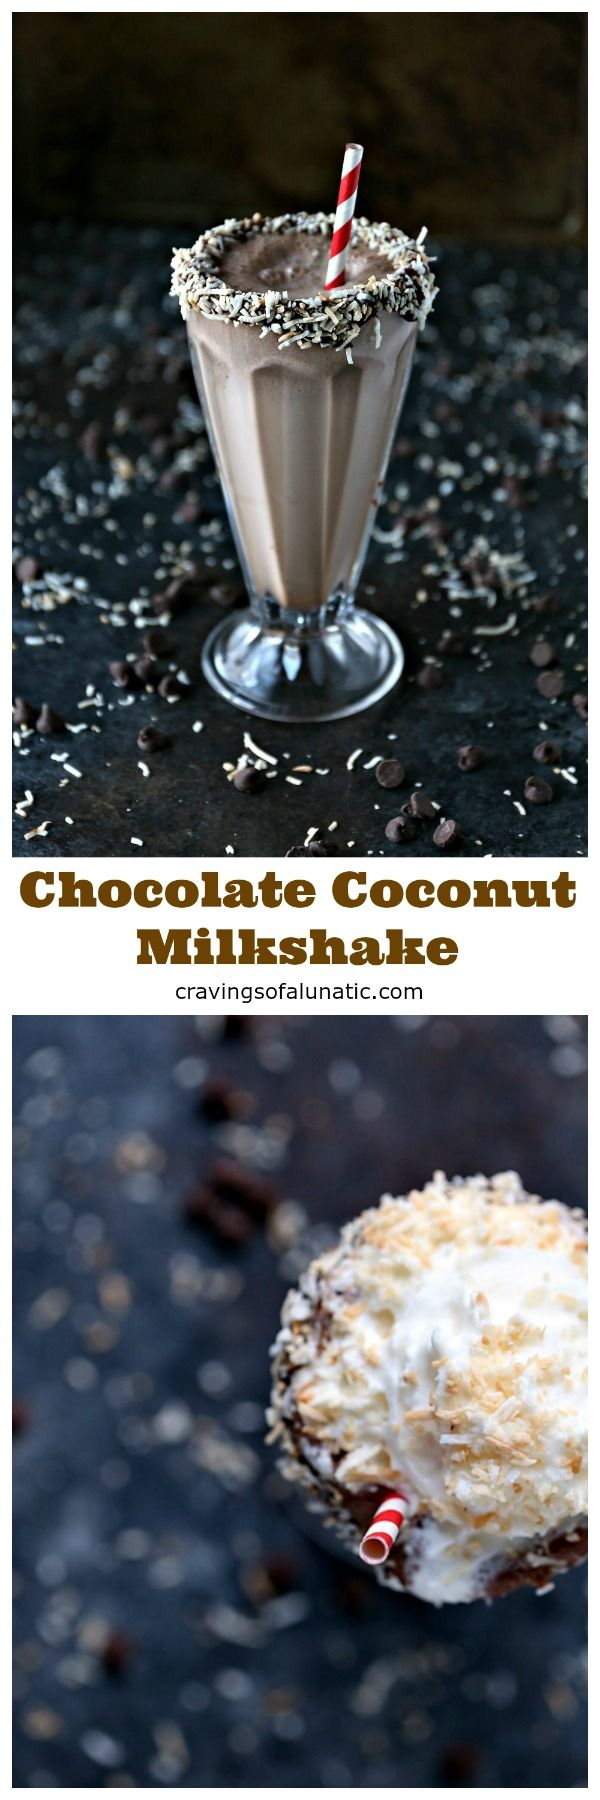 Chocolate Coconut Milkshakes. This chocolate and coconut milkshake is the perfect drink for game day, cookouts or family gatherings. Chocolate and coconut pair perfectly in this tasty milkshake.